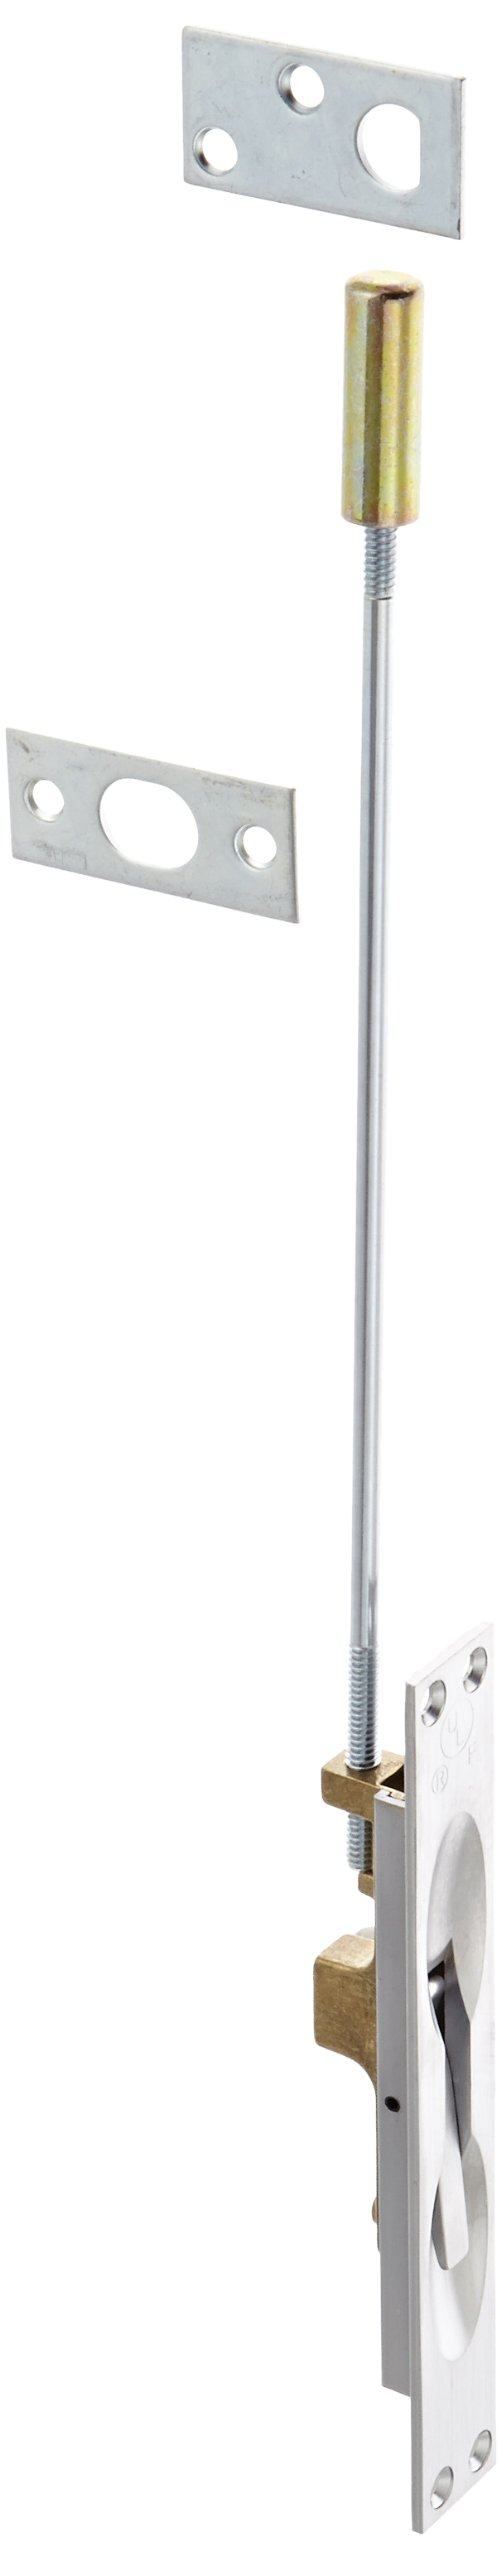 Rockwood 555.26D Lever Extension Flush Bolt for Fire-Rated Swinging Hollow Metal Doors, 1'' Width x 6-3/4'' Height, Brass Satin Chrome Plated Finish